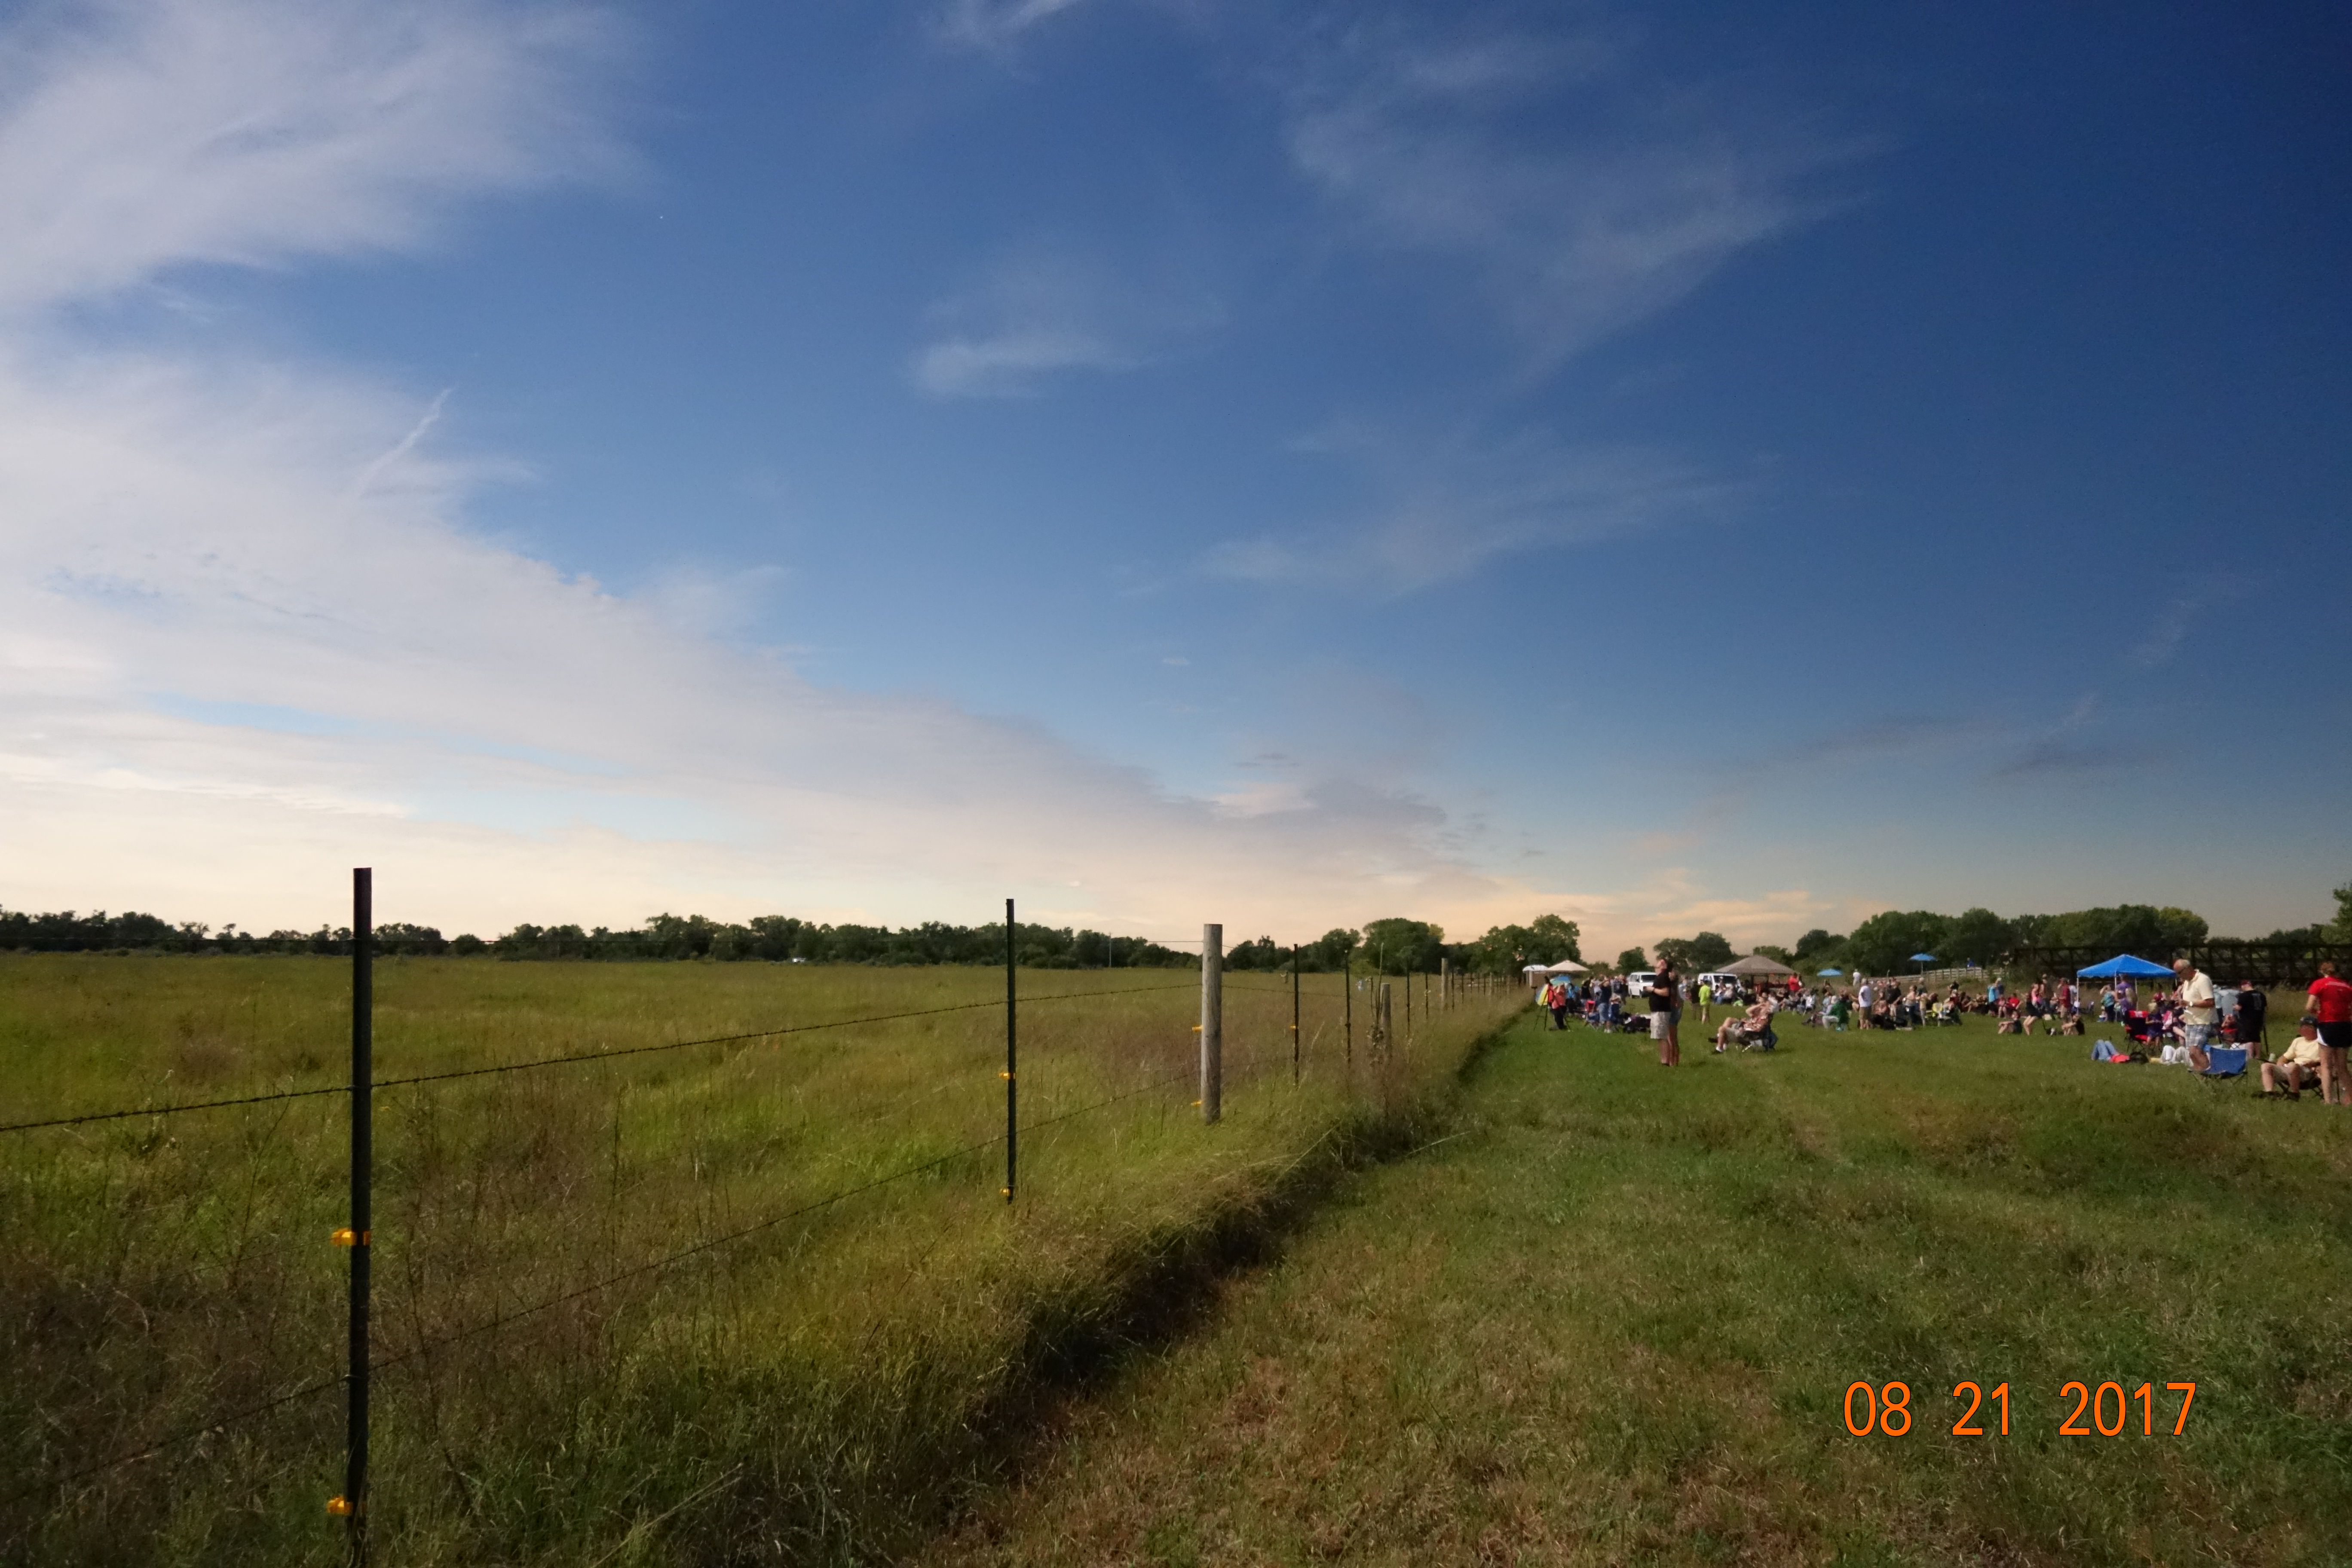 The Great American Eclipse: Research and Community in the Great Plains